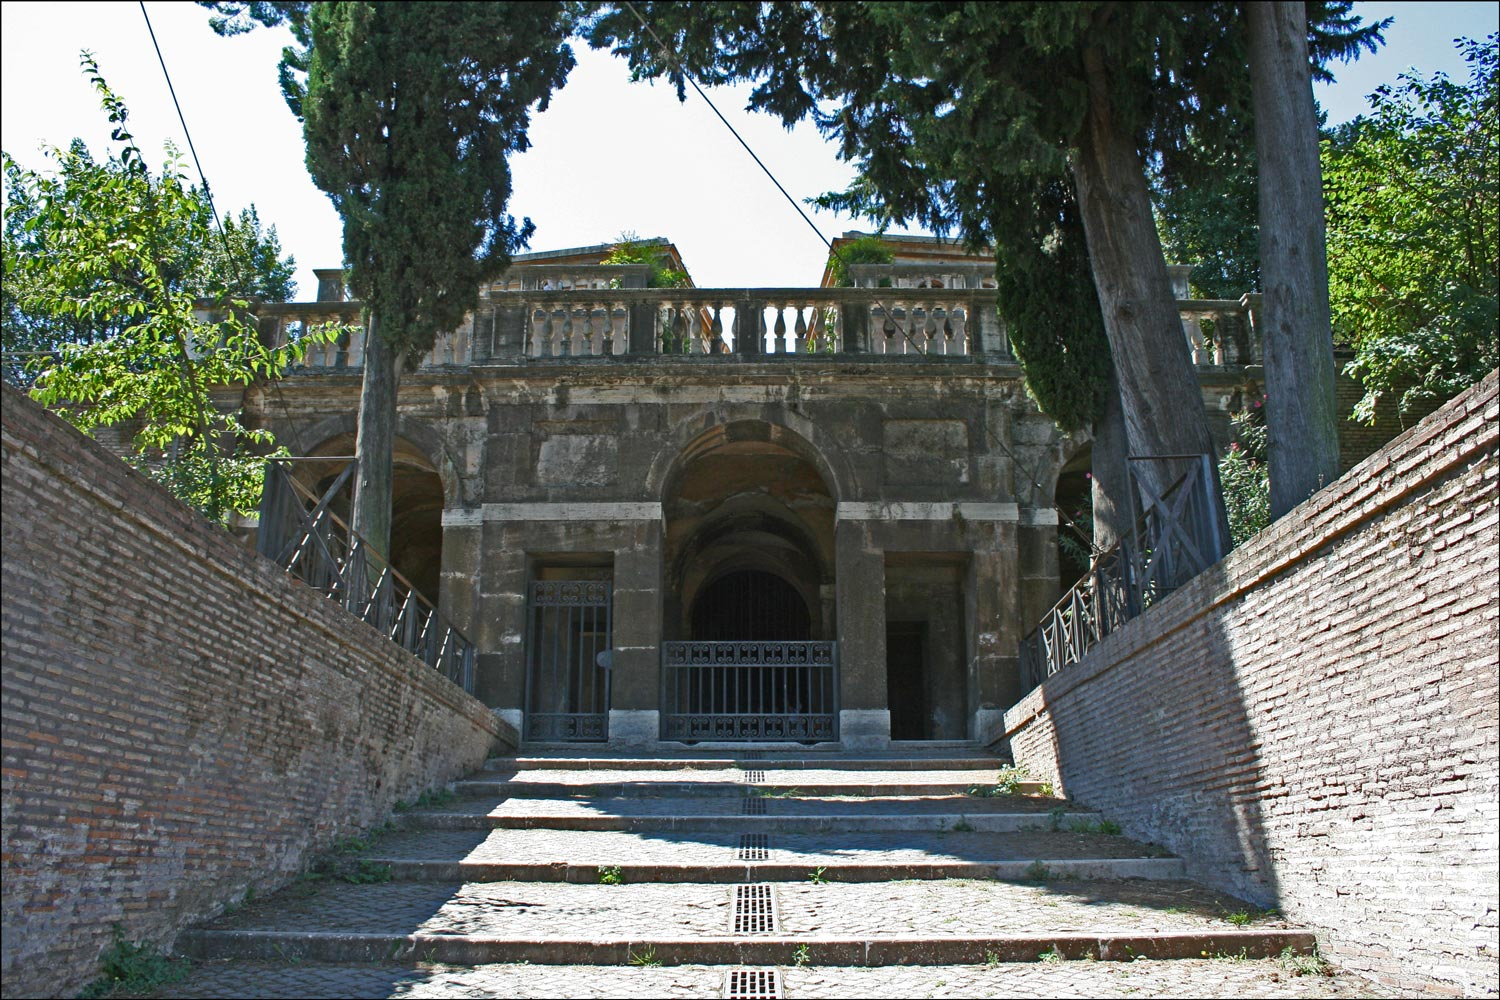 Stairway to the Nymphaeum and the Farnese Gardens